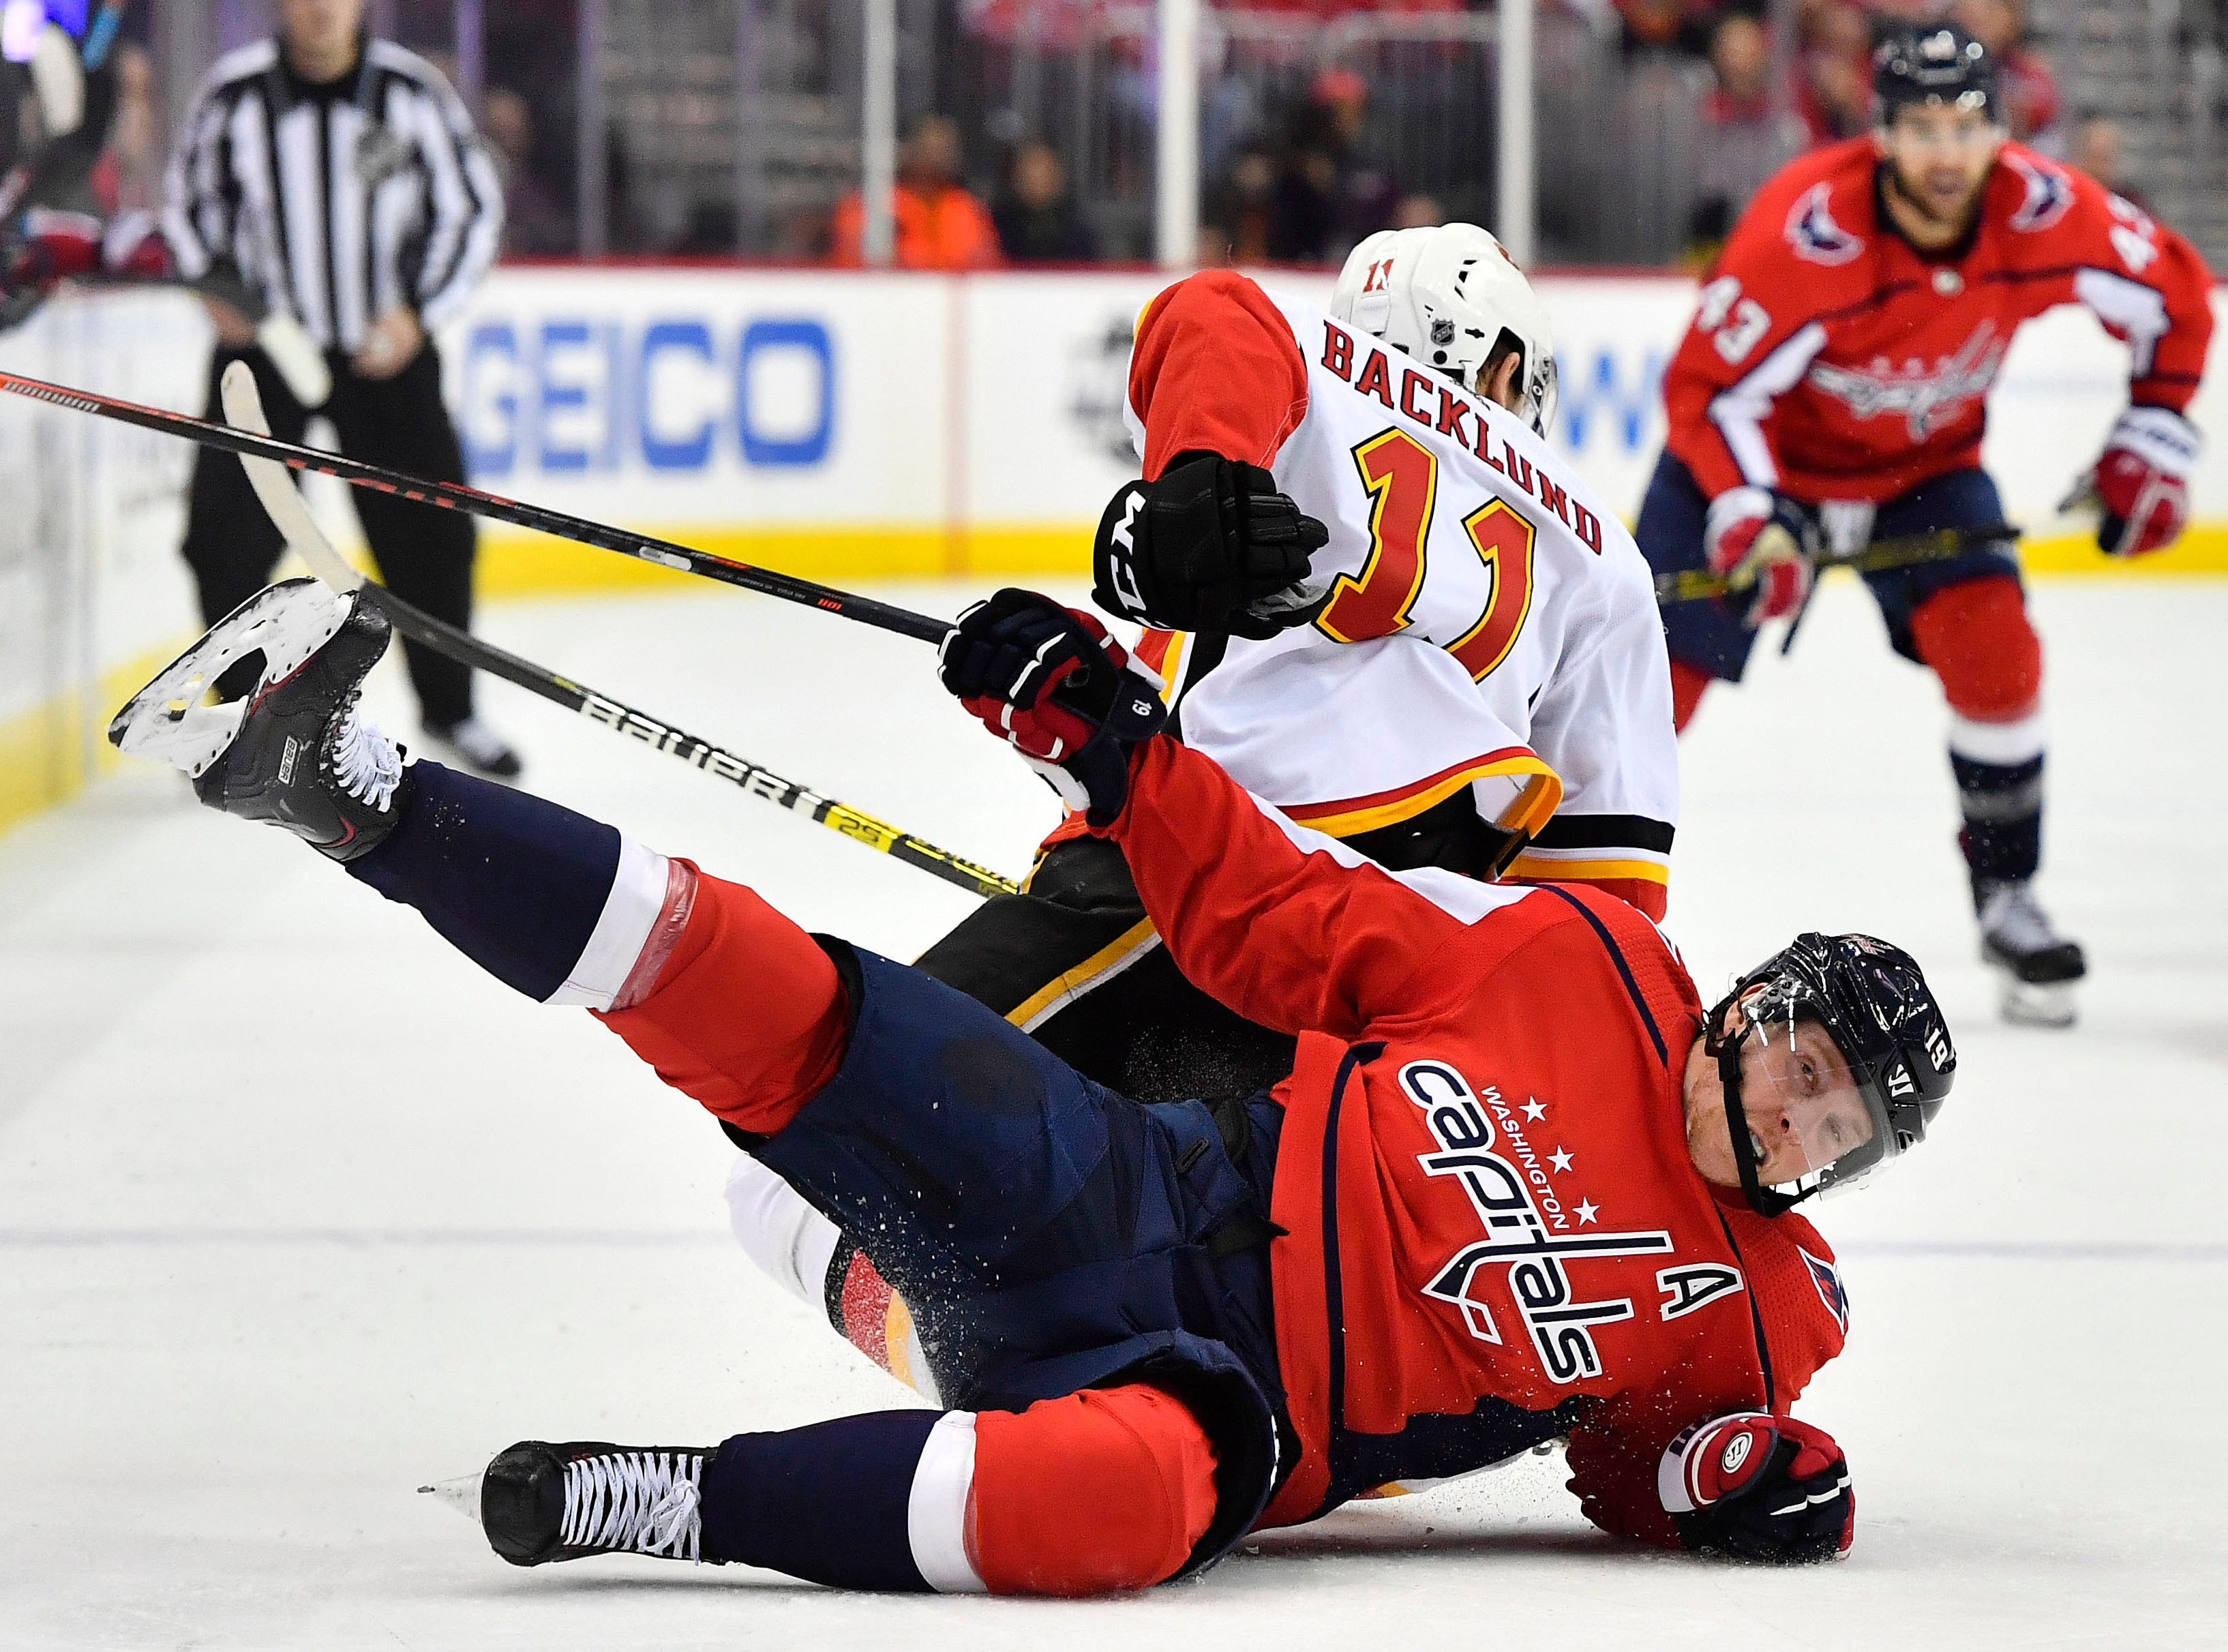 Feb. 1: Calgary Flames center Mikael Backlund (11) is assessed a penalty for tripping Washington Capitals center Nicklas Backstrom (19) during the third period at Capital One Arena.